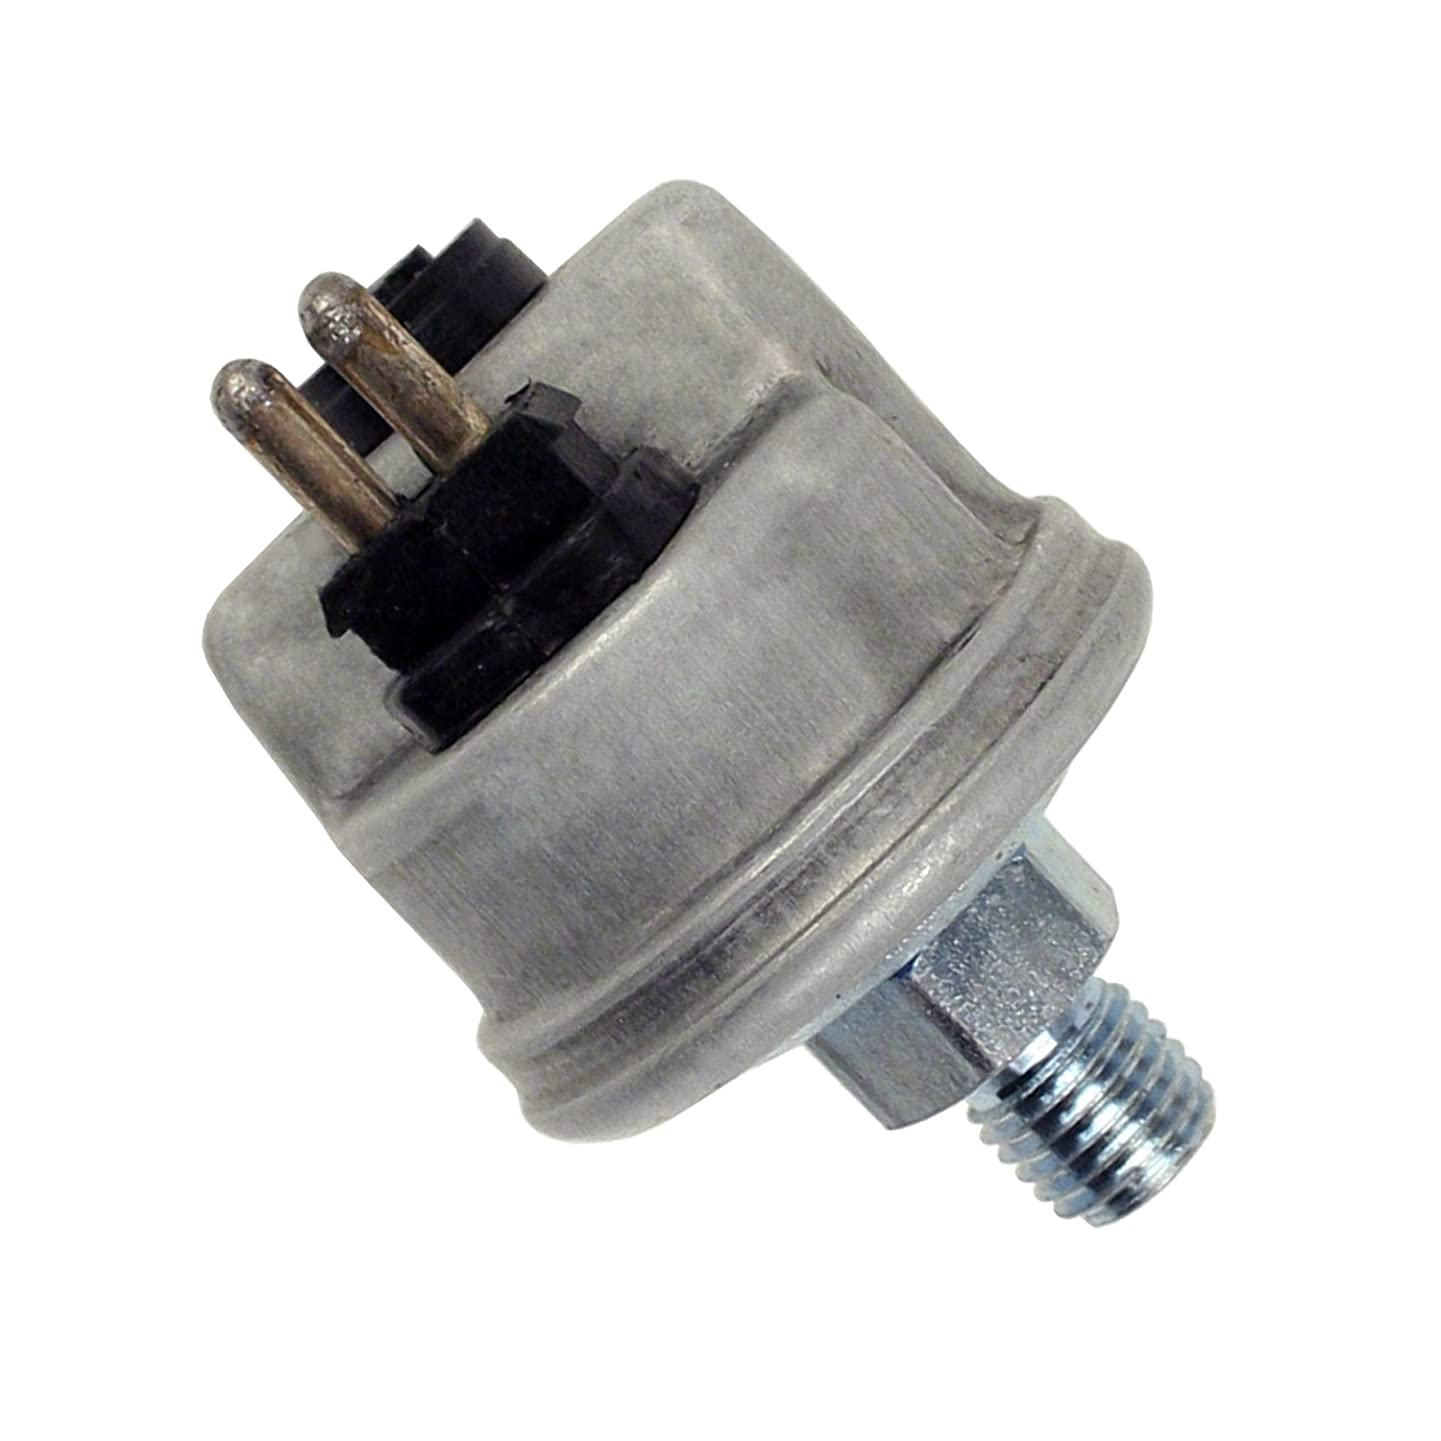 Beck Arnley 201-1975 Oil Pressure Switch with Gauge